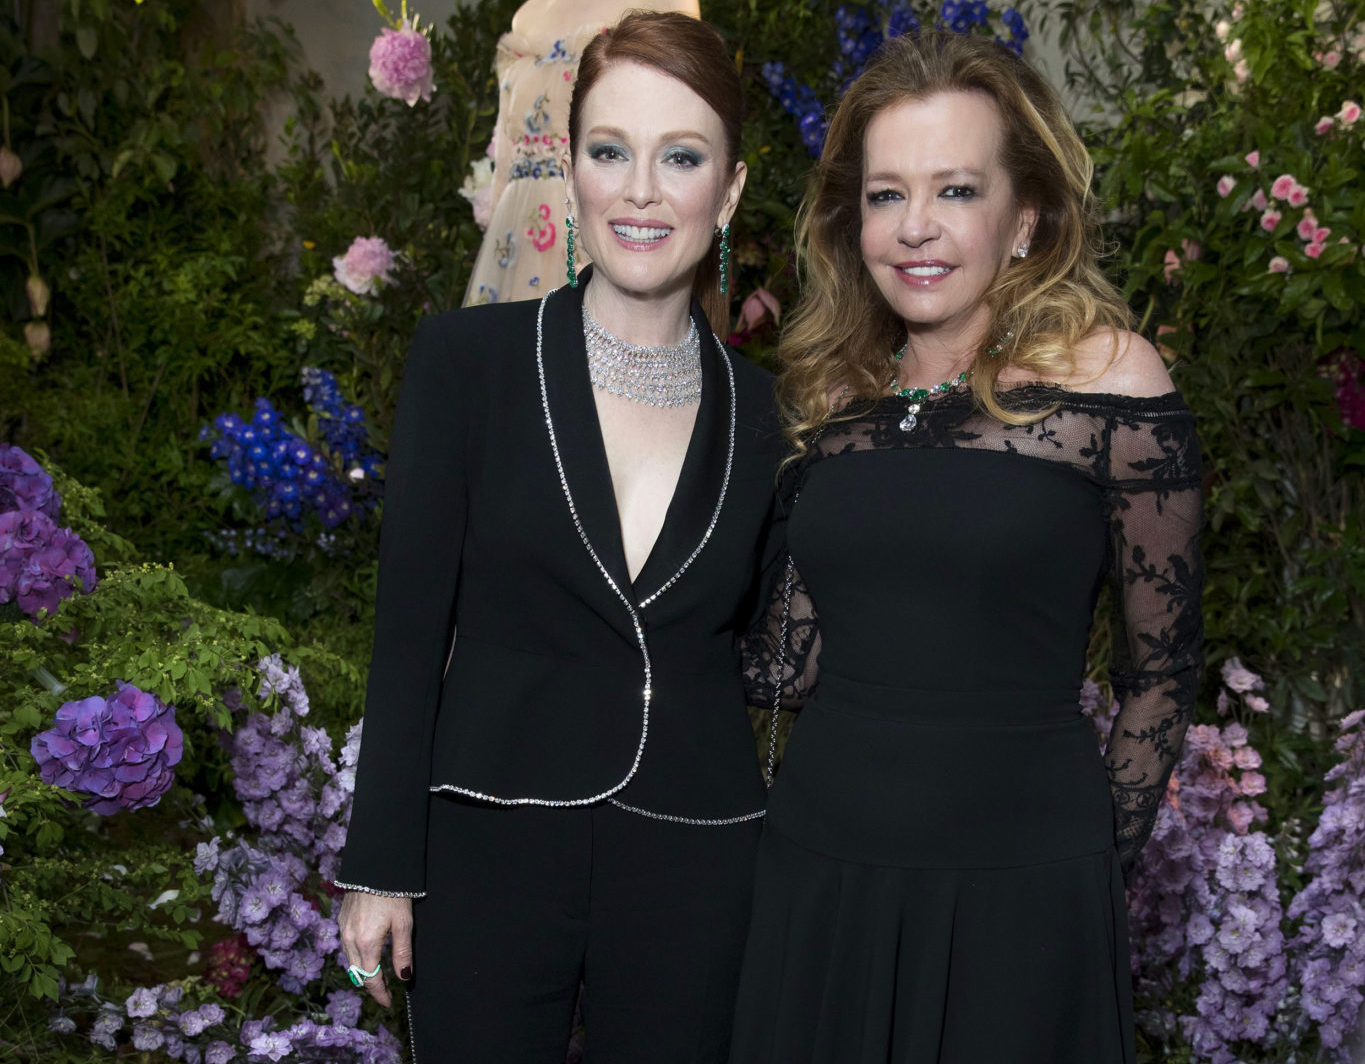 Julianne_Moore_and_Caroline_Scheufele-JPG_16004